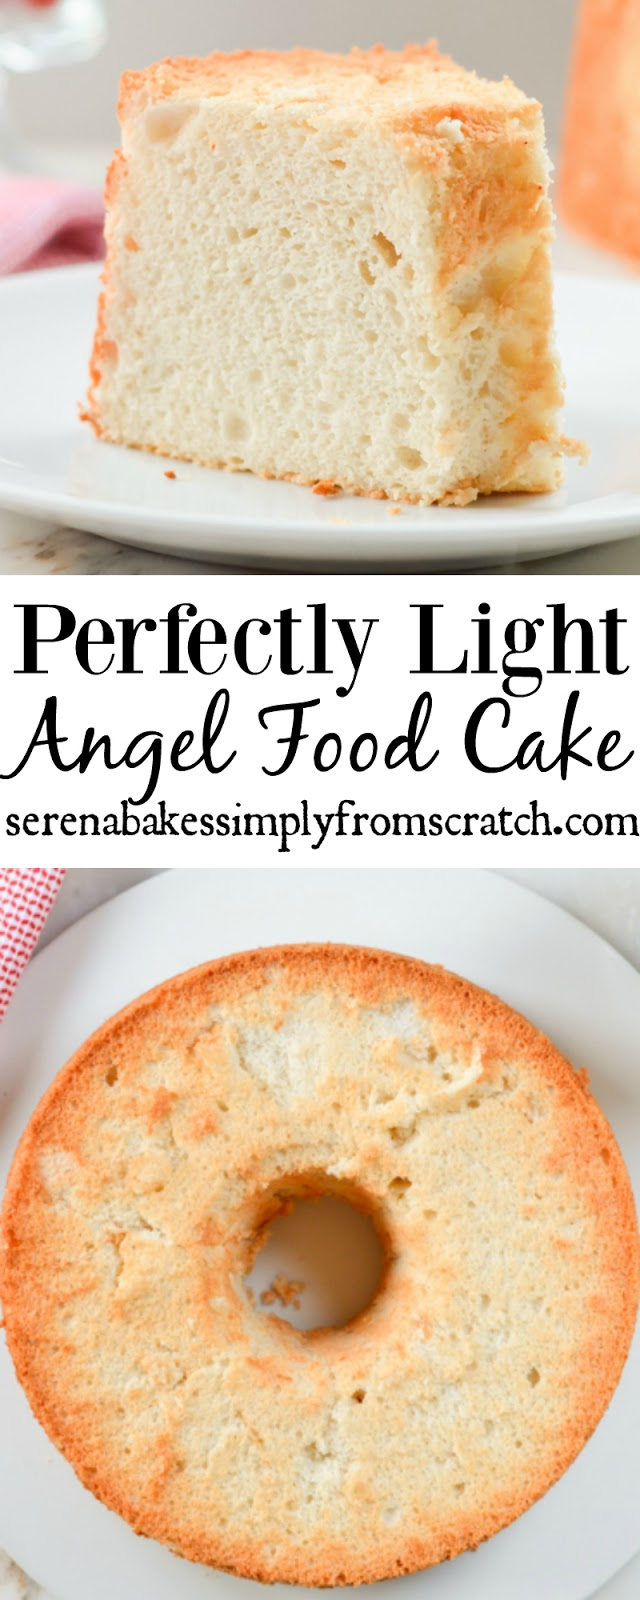 Perfectly Light Angel Food Cake. Perfect with berries and whip cream! serenabakessimplyfromscratch.com